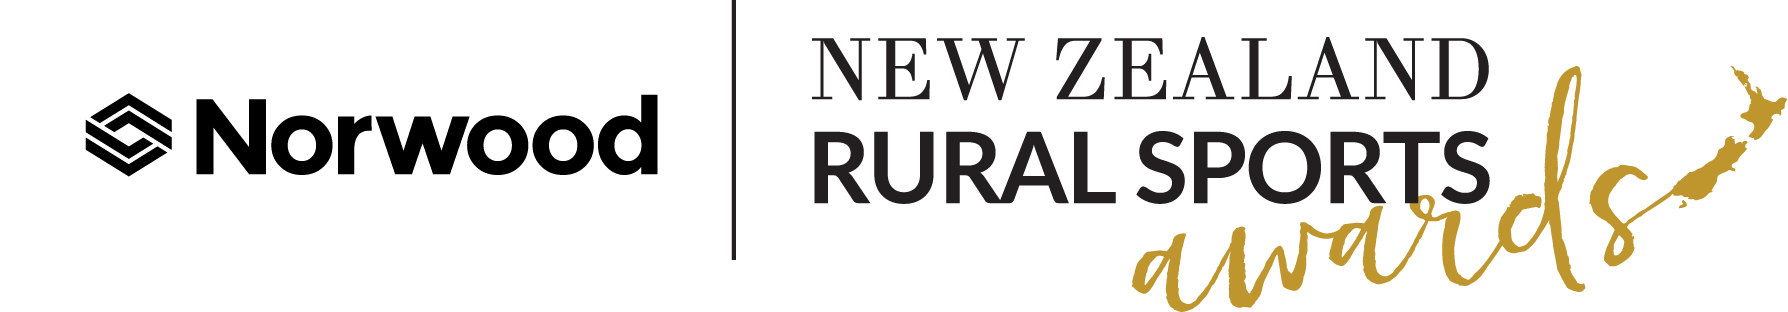 Entries are now being called for the Norwood New Zealand Rural Sports Awards